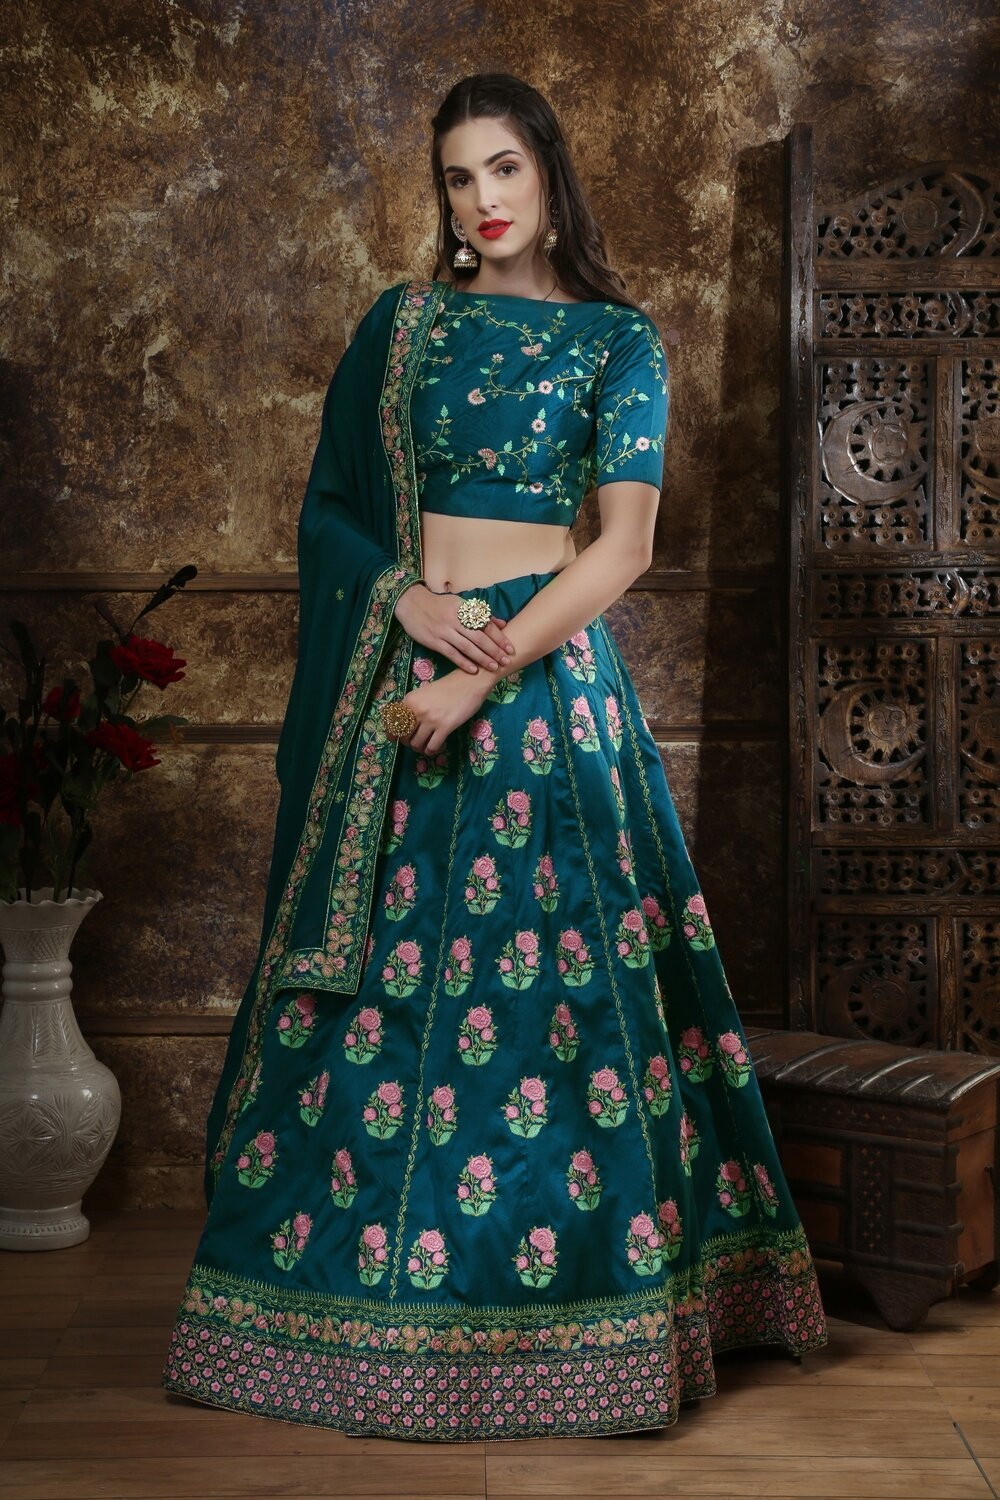 Teal Blue Party Wear Indian Lehenga Choli With Heavy Embroidery Work